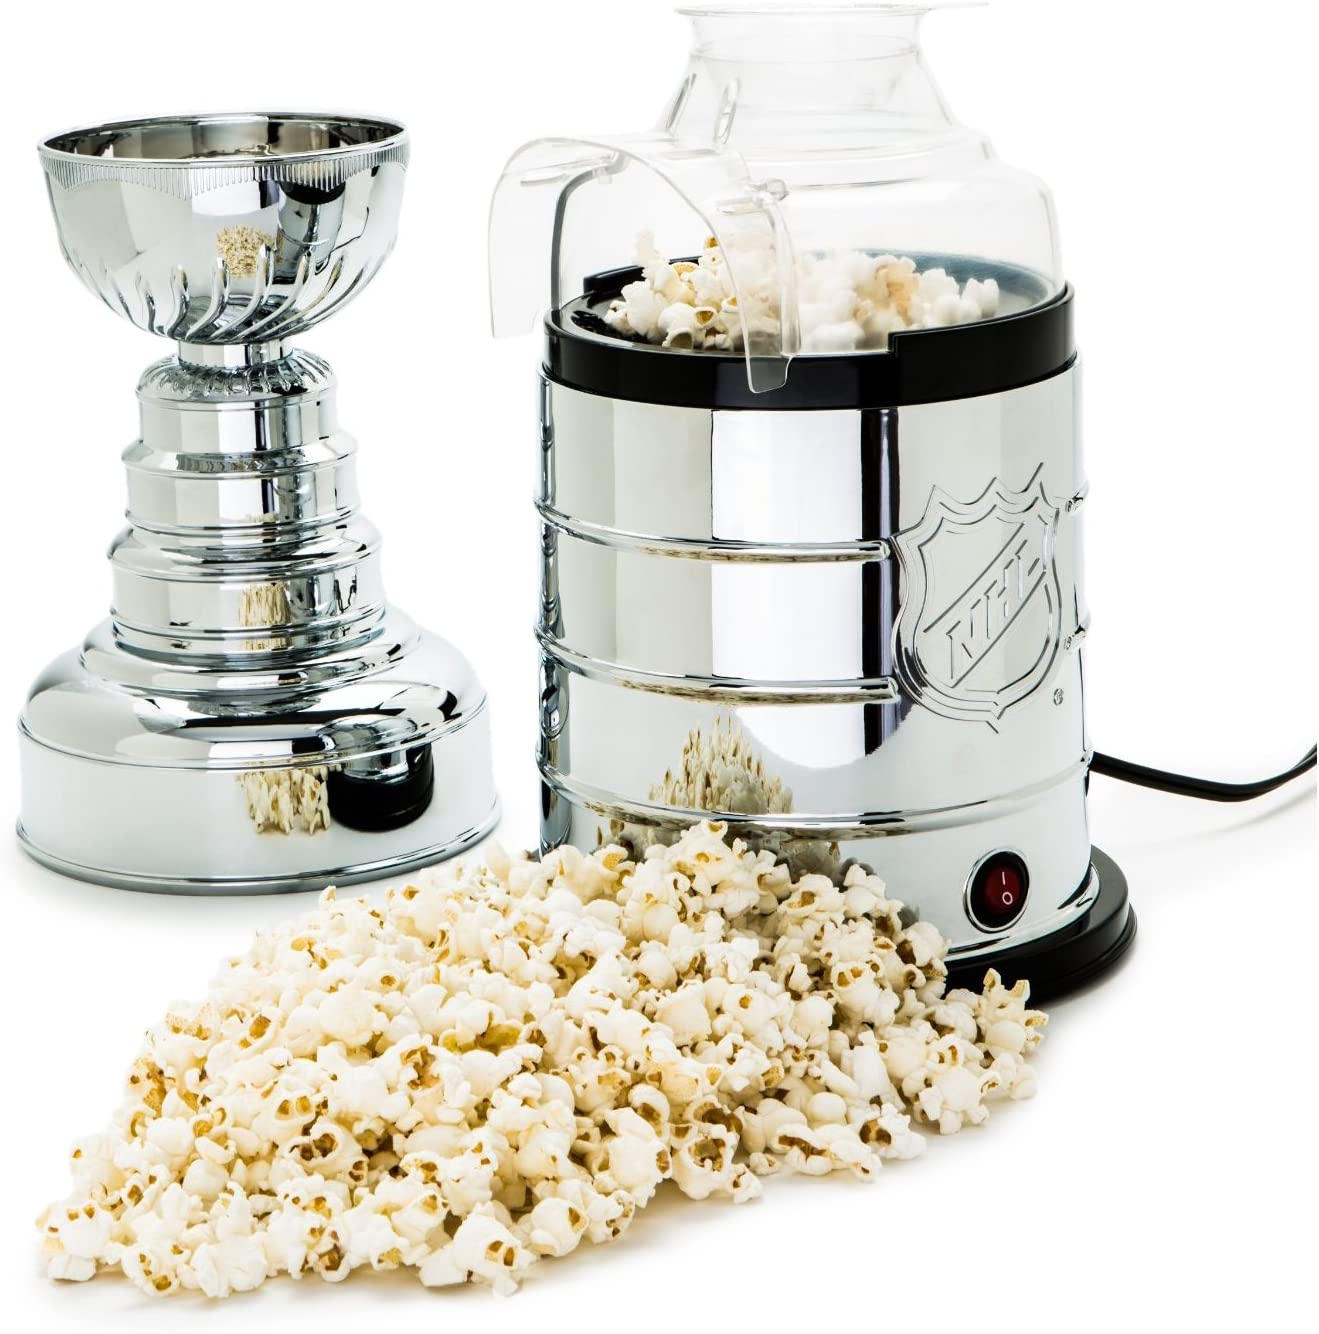 NHL League Logo Stanley Maker Max 76% OFF Cup Louisville-Jefferson County Mall Popcorn